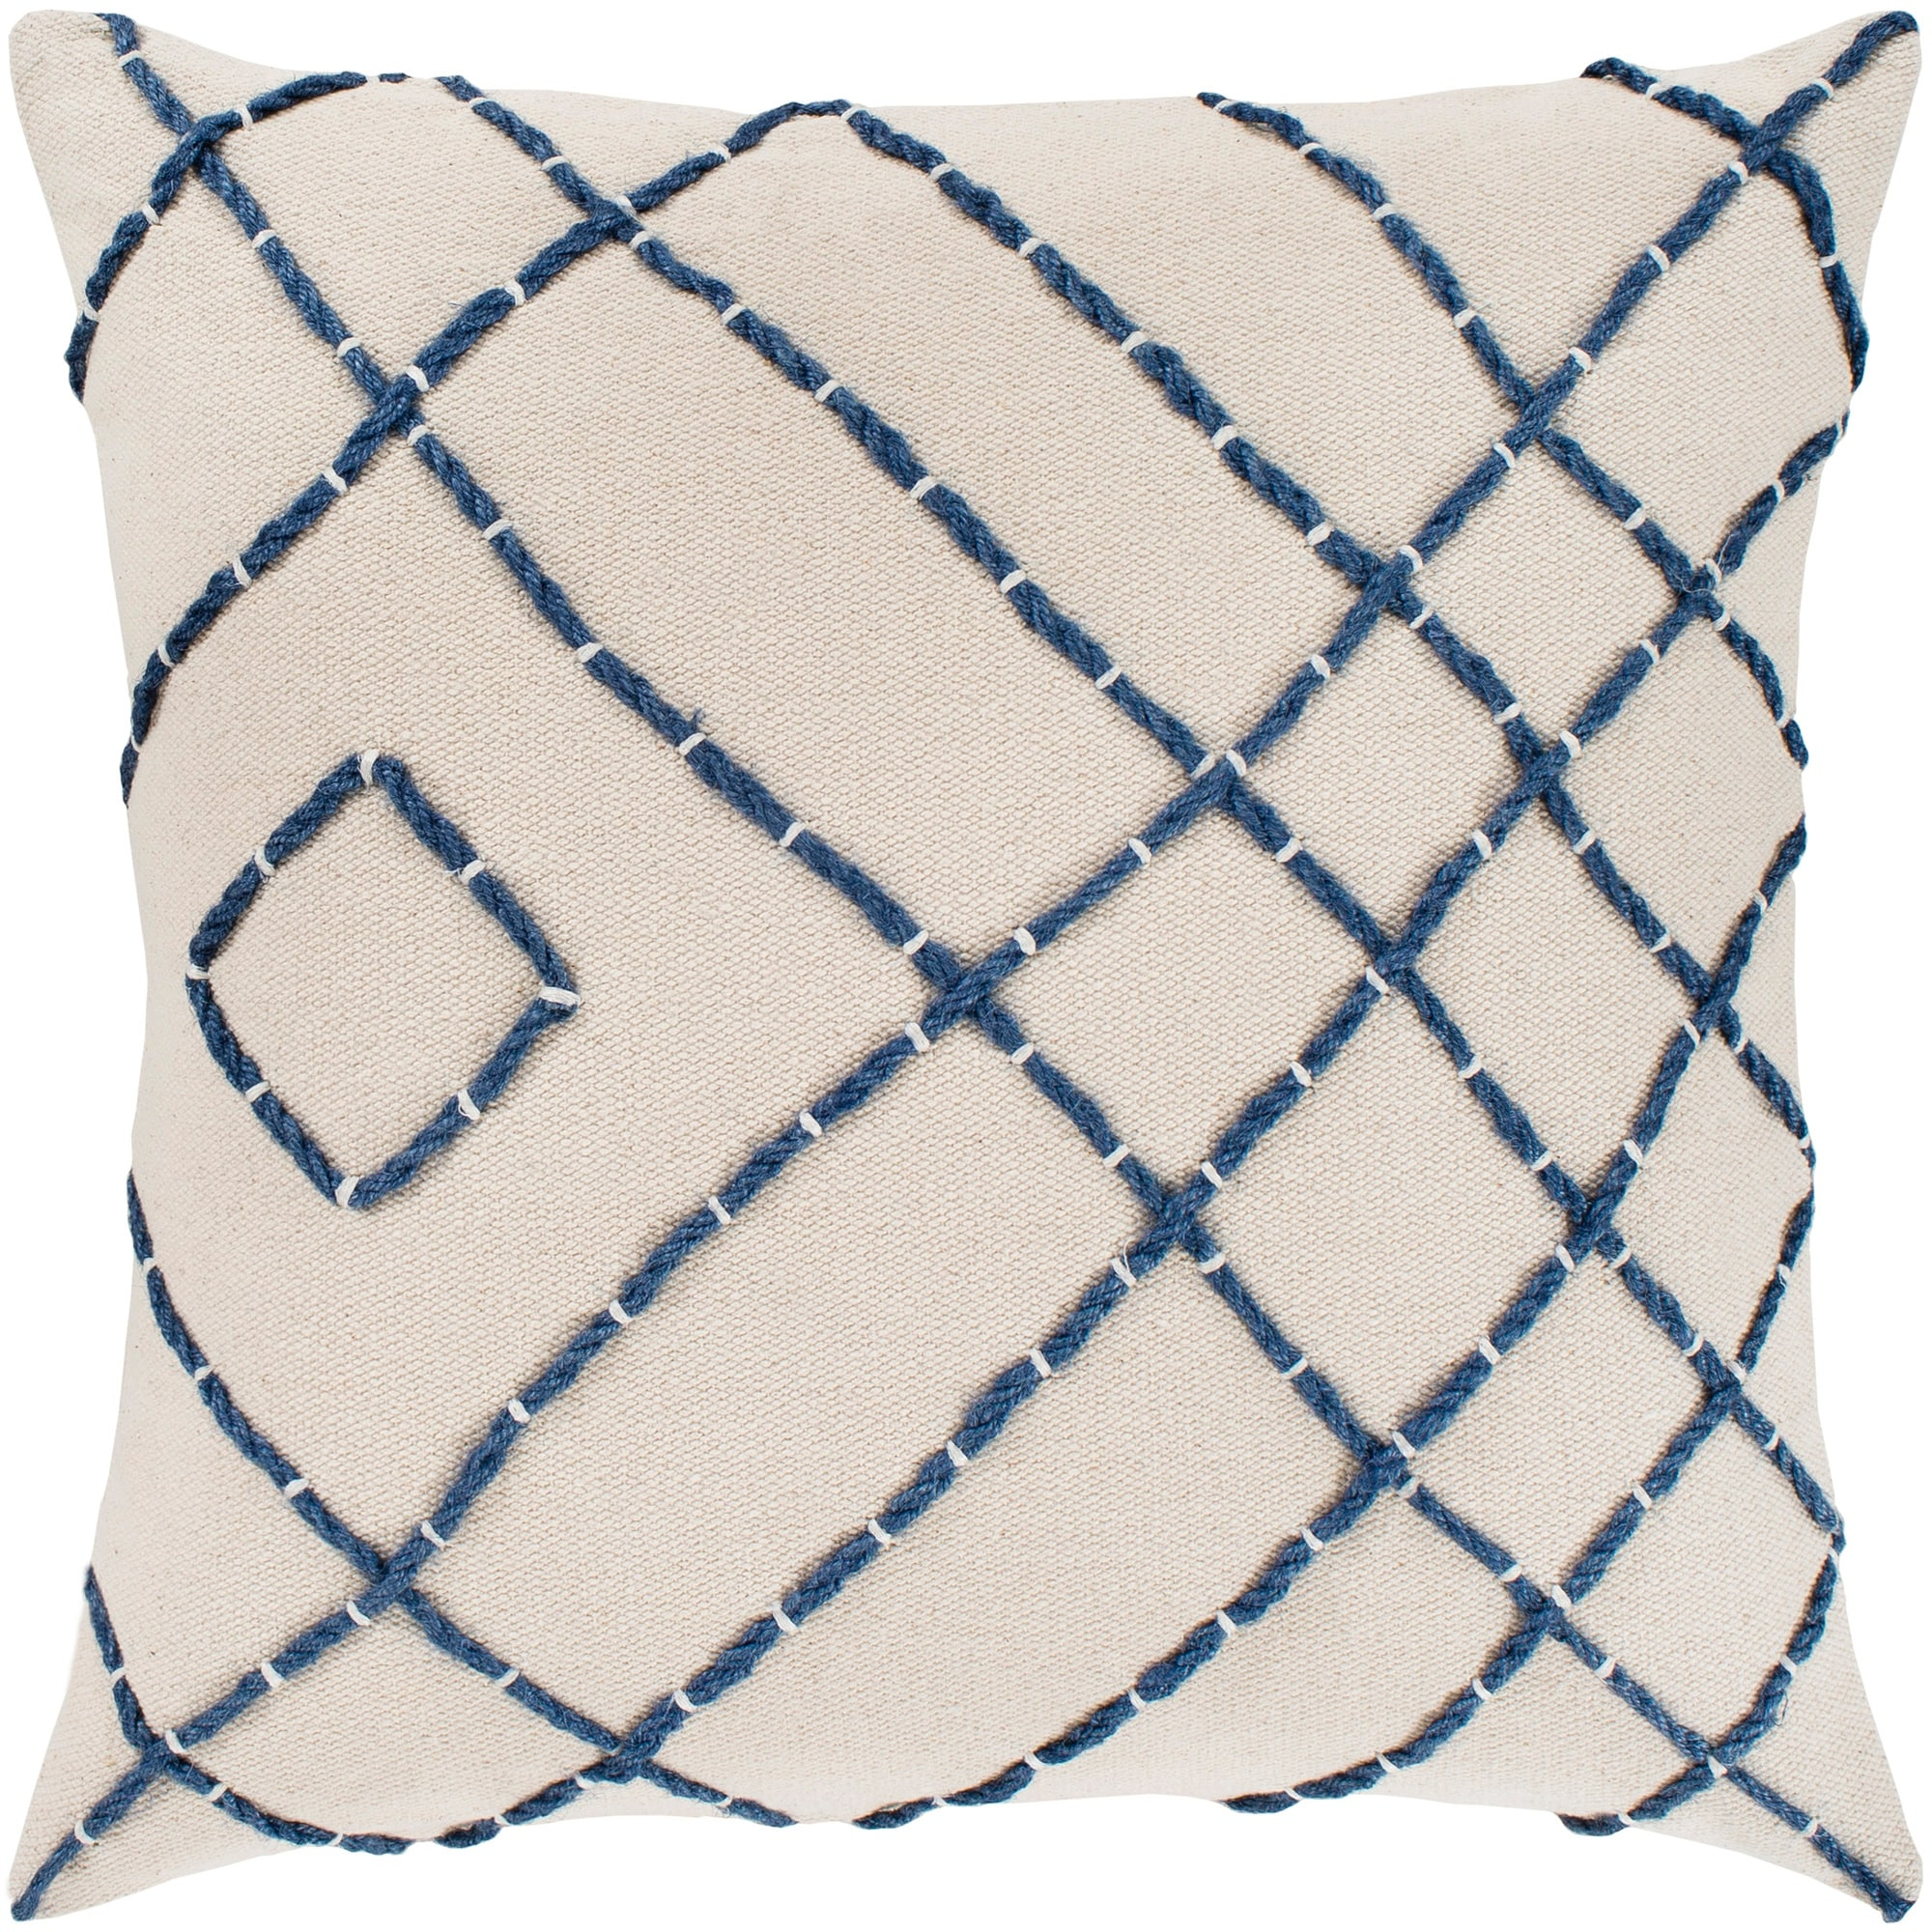 kelby cream navy hand embroidered throw pillow cover 20 x 20